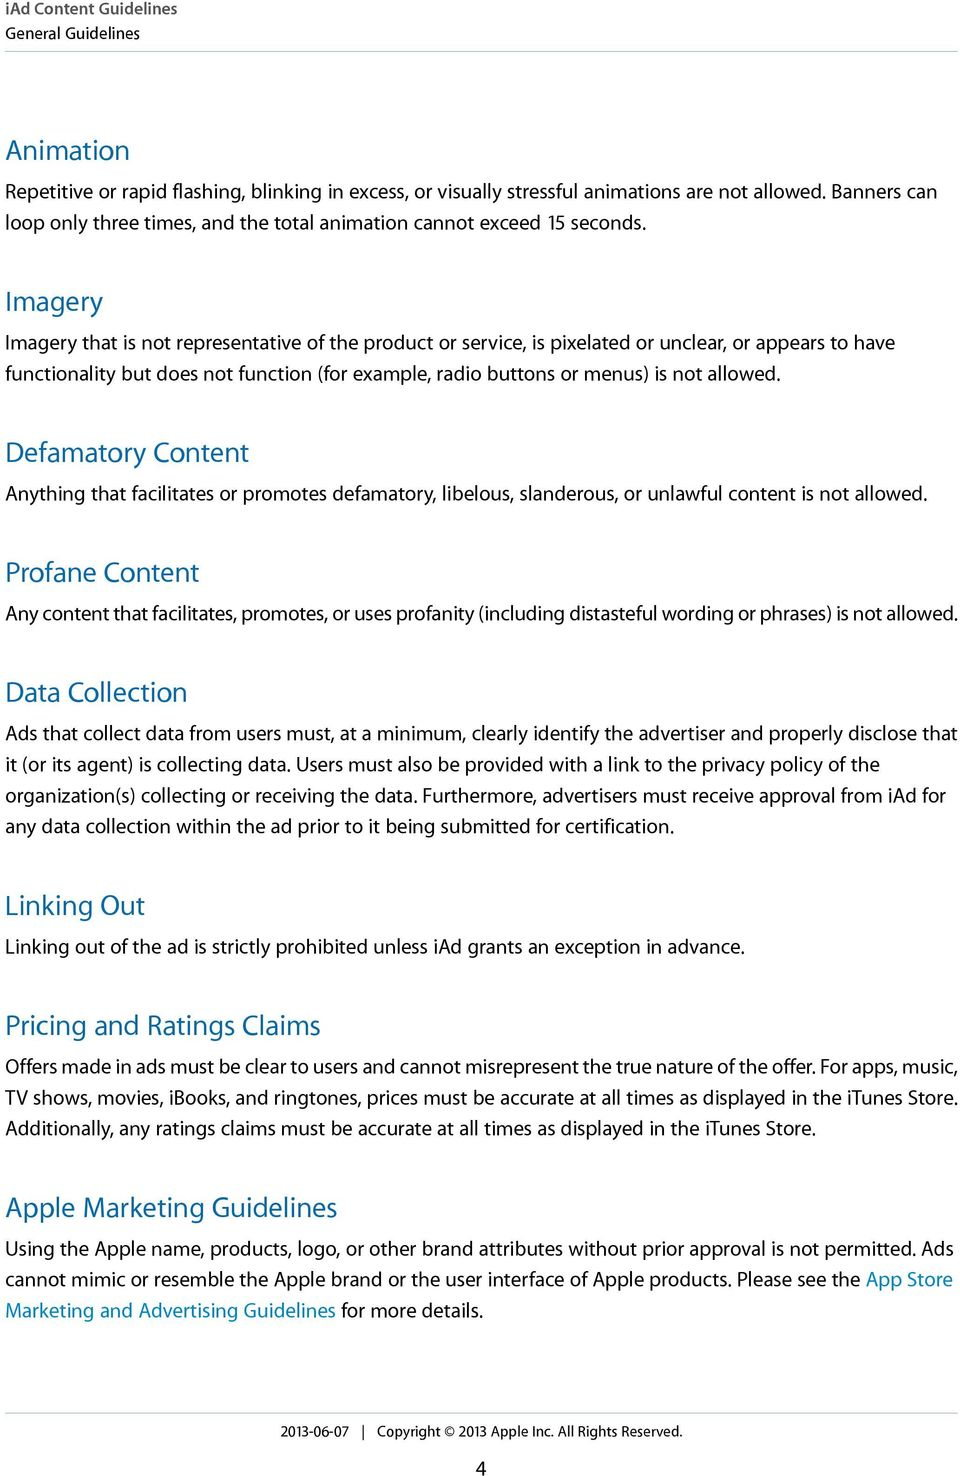 Imagery Imagery that is not representative of the product or service, is pixelated or unclear, or appears to have functionality but does not function (for example, radio buttons or menus) is not